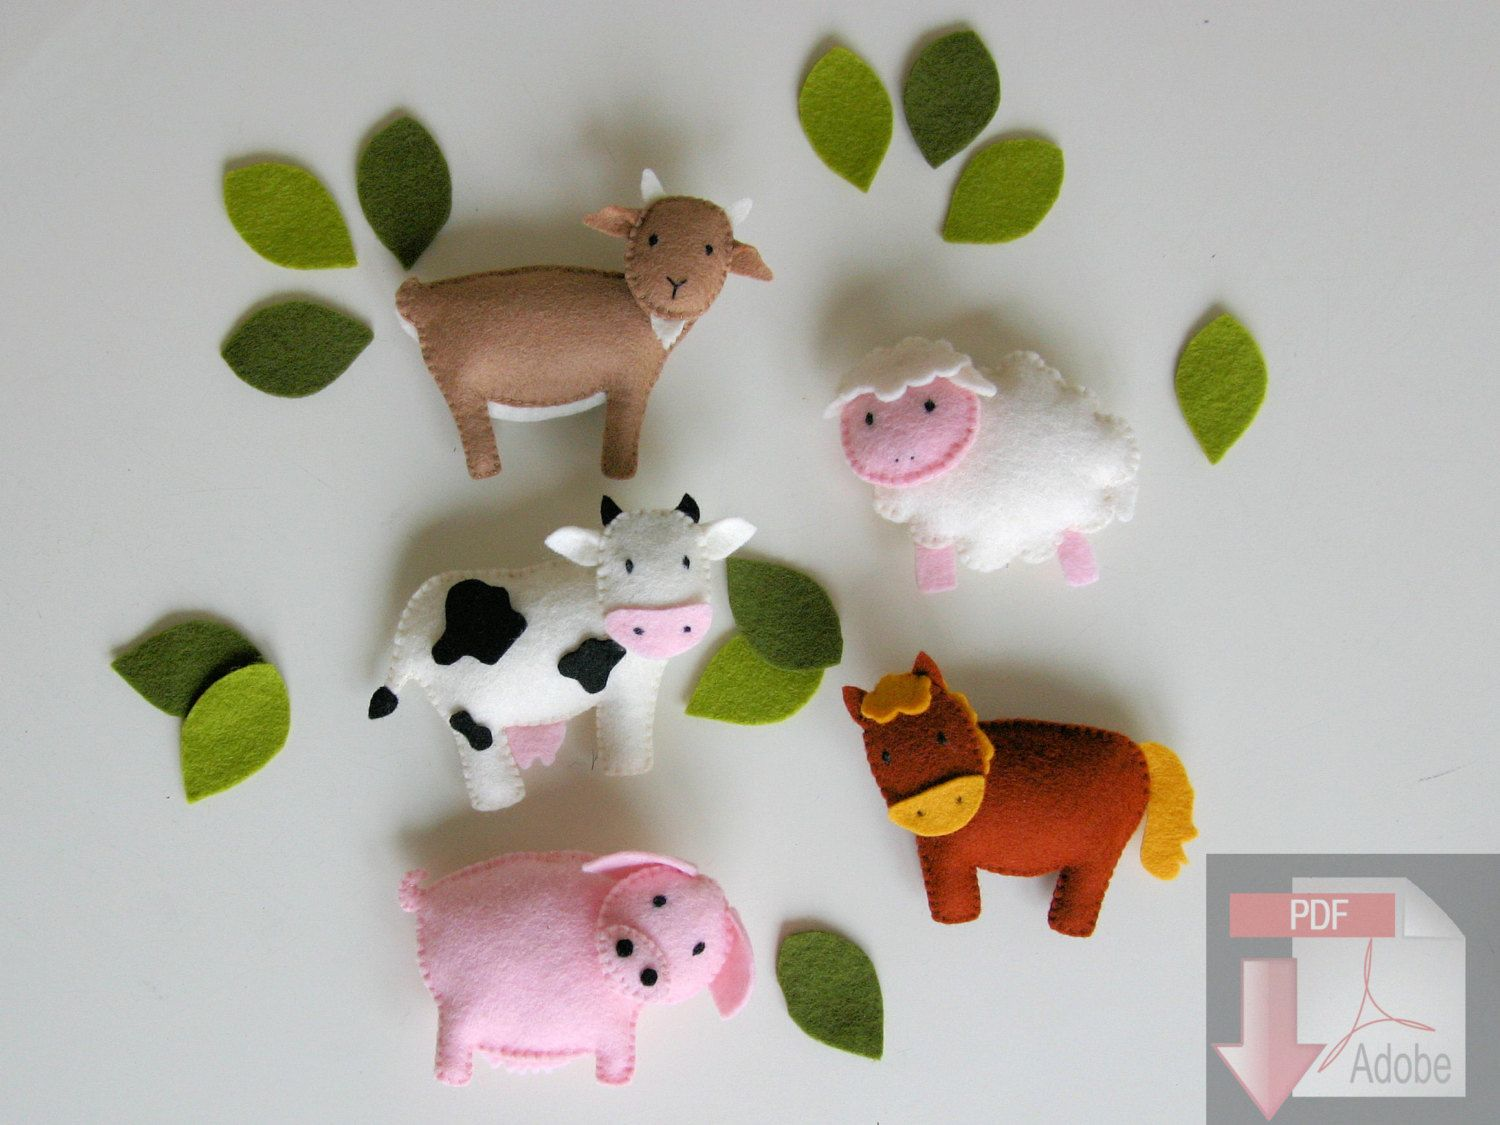 Pig christmas ornaments - Pattern Felt Ornaments 6 Farm Animals Mobile Country Crib Mobile Diy Wool Felt Pattern Cow Goat Sheep Horse Pig Hog Rooster Baby Mobile